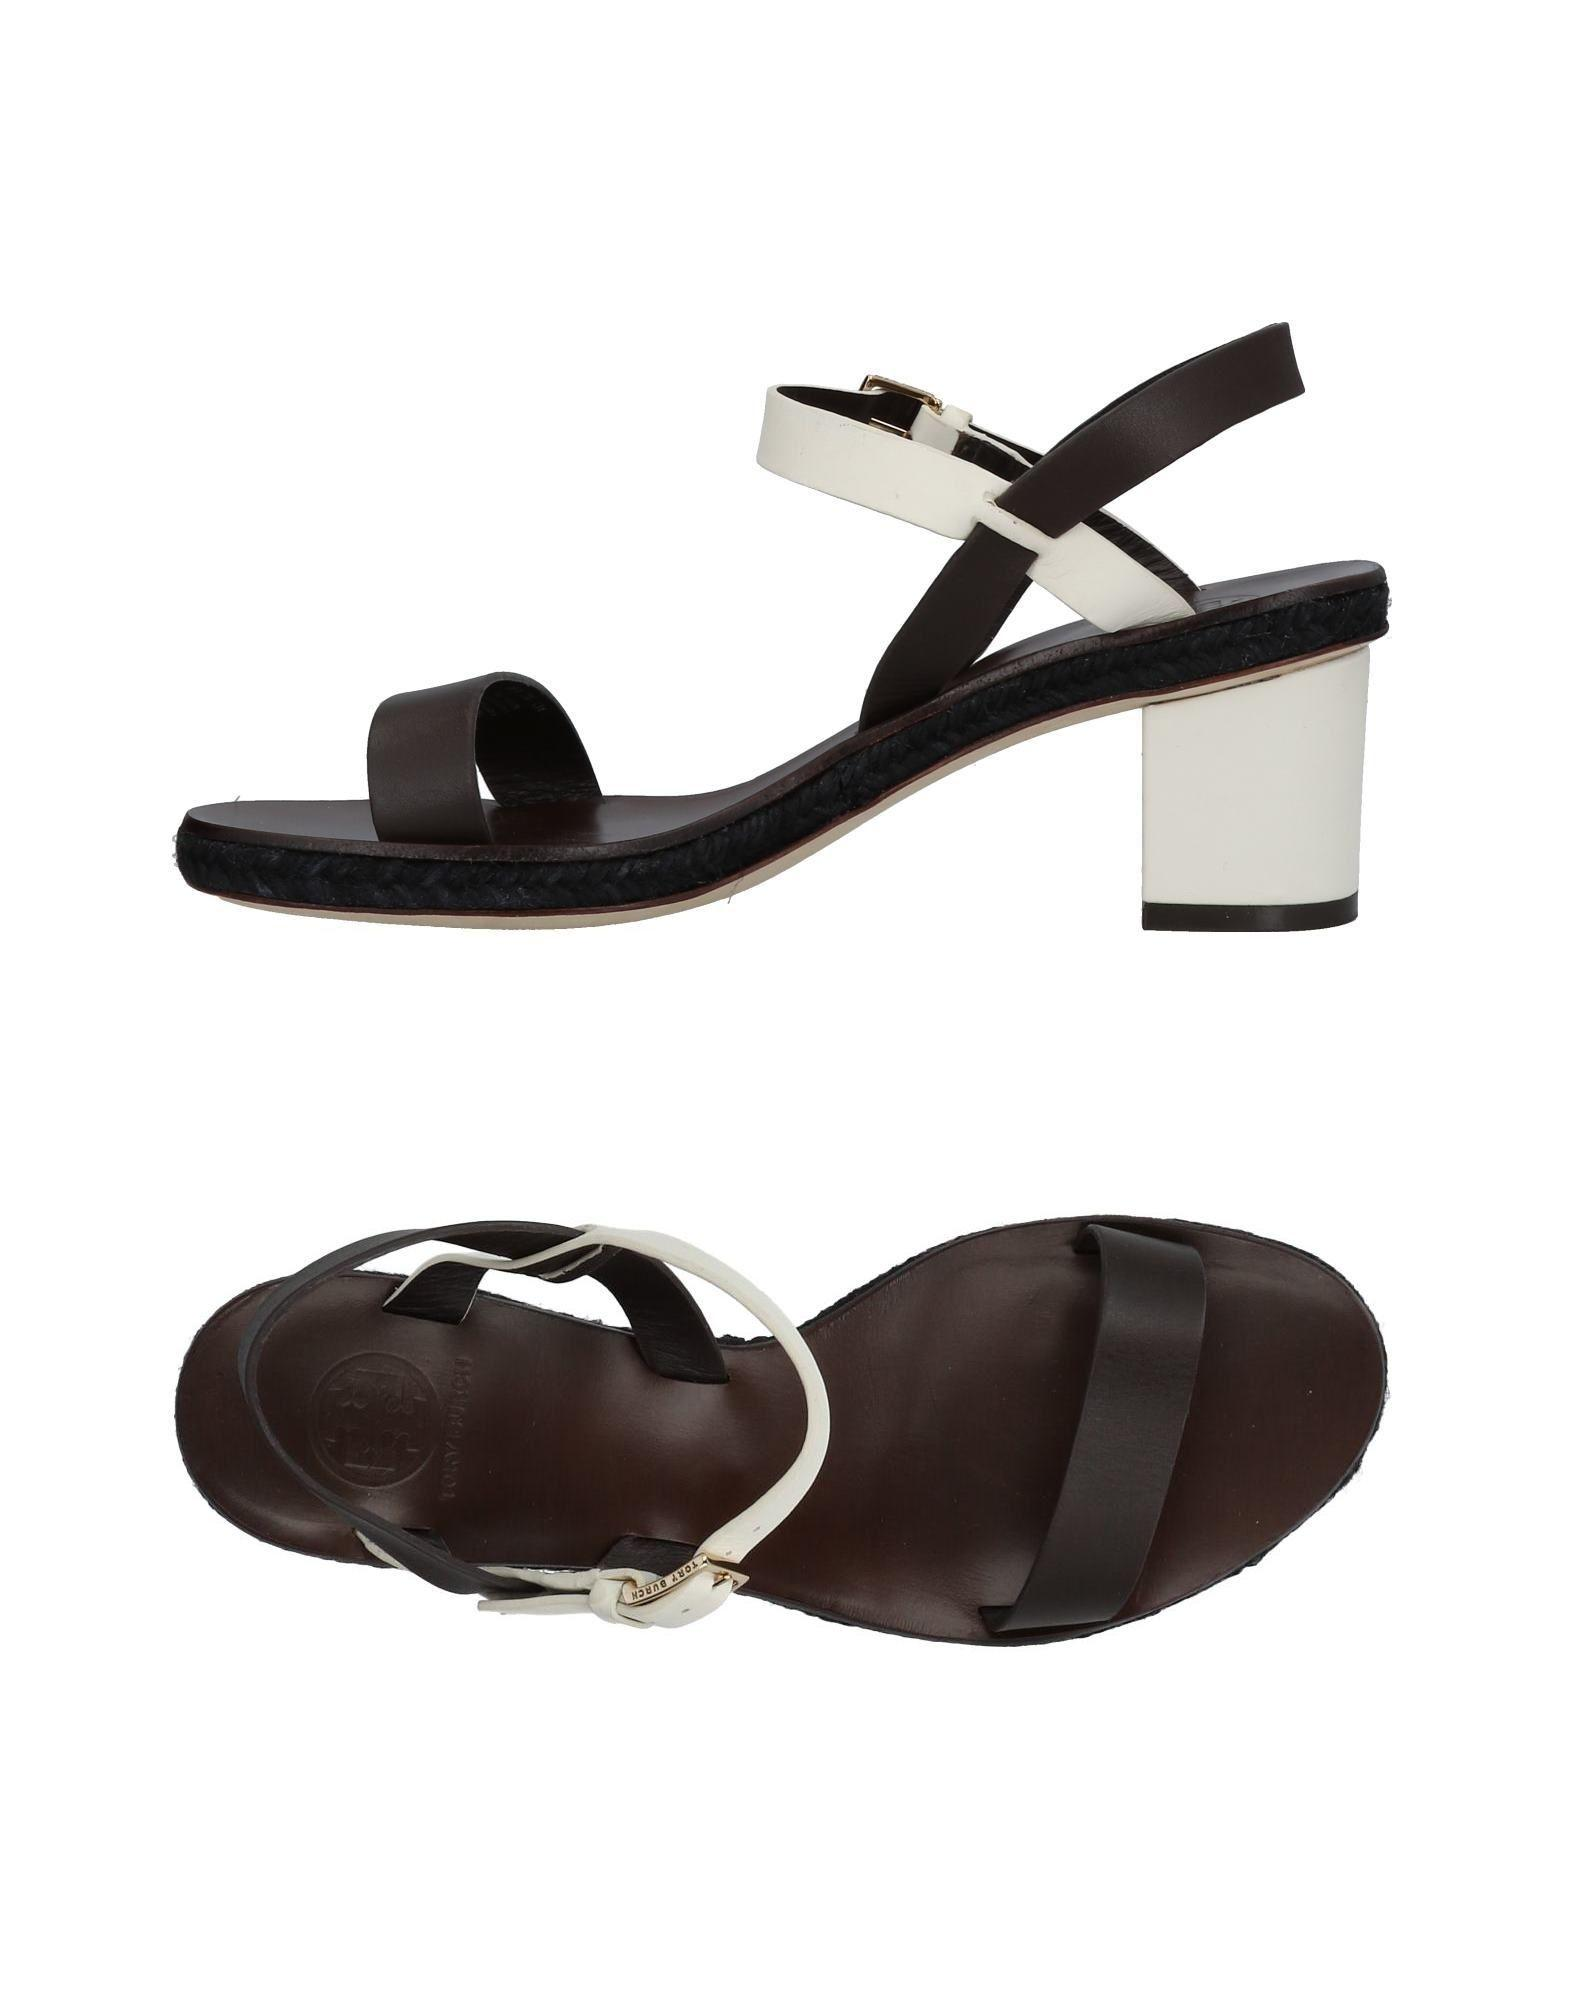 Tory Burch Sandals In Cocoa